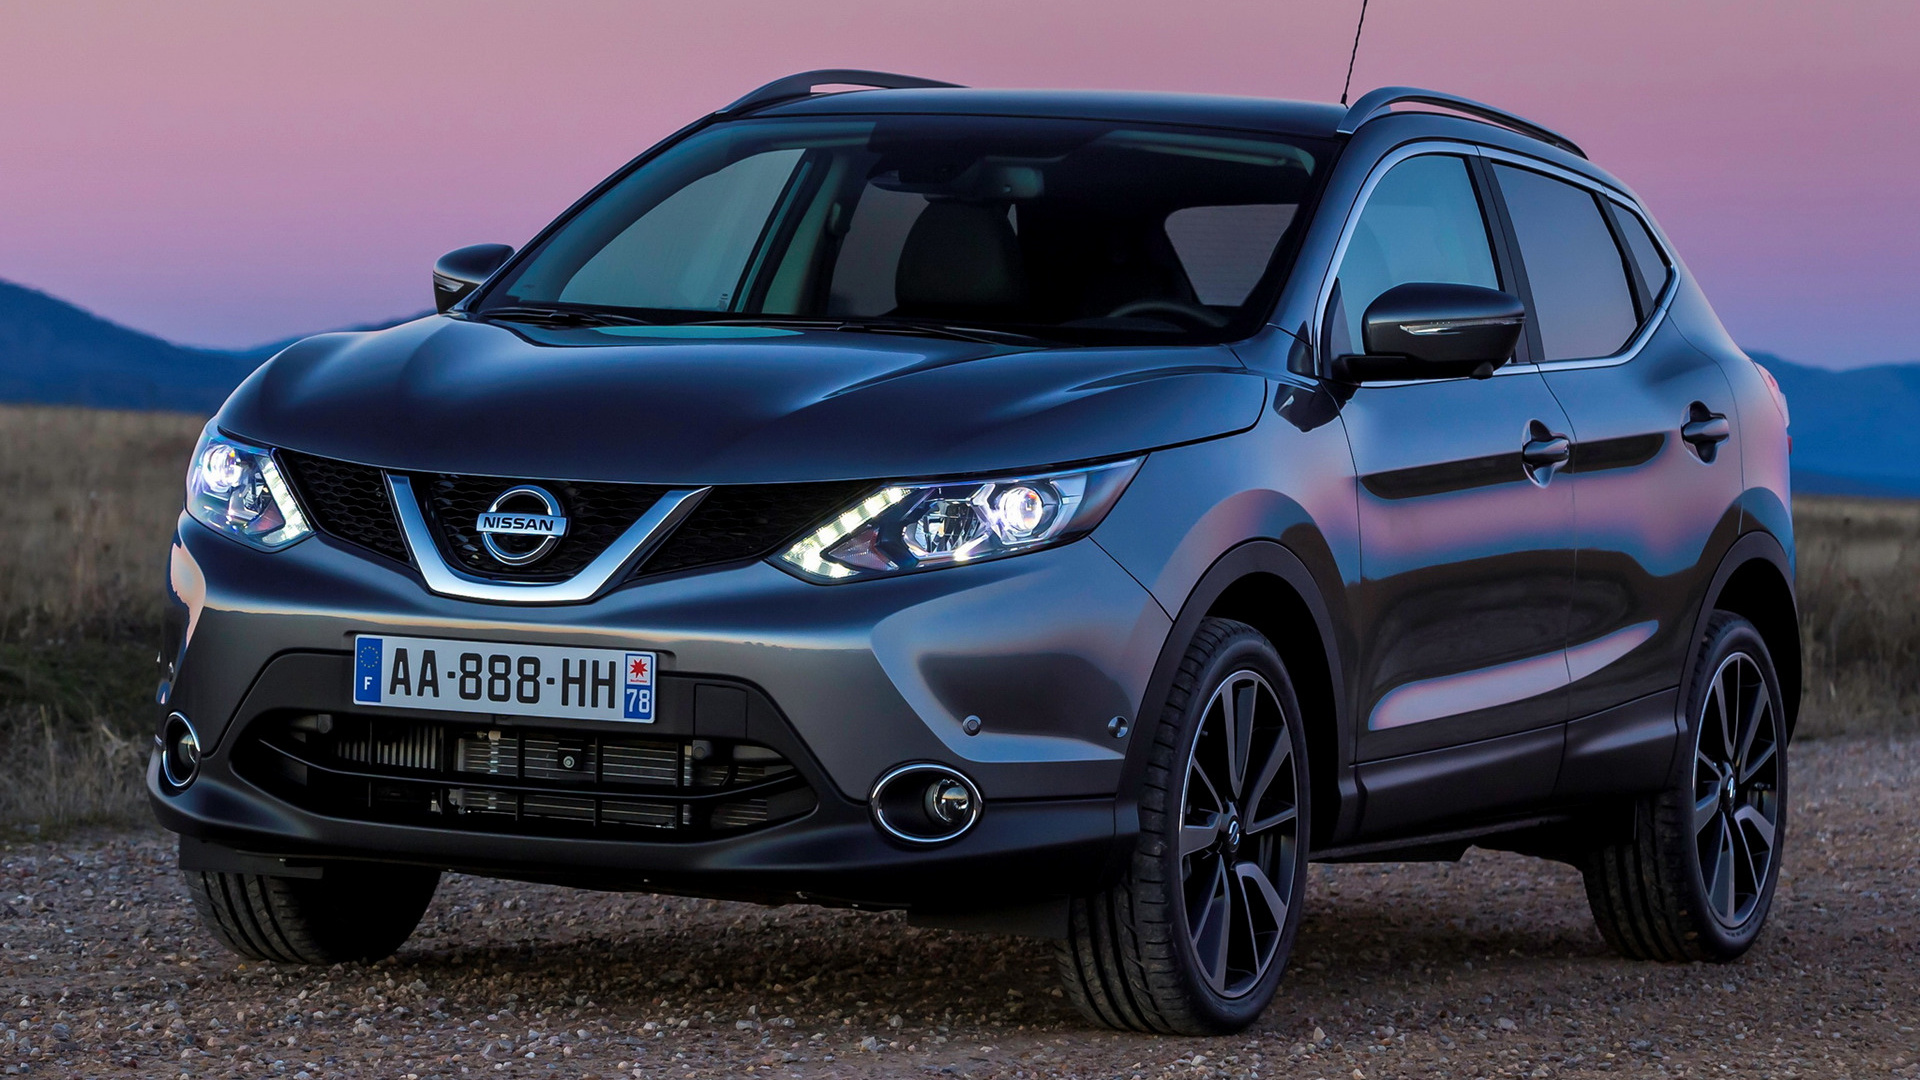 2014 nissan qashqai wallpapers and hd images car pixel. Black Bedroom Furniture Sets. Home Design Ideas